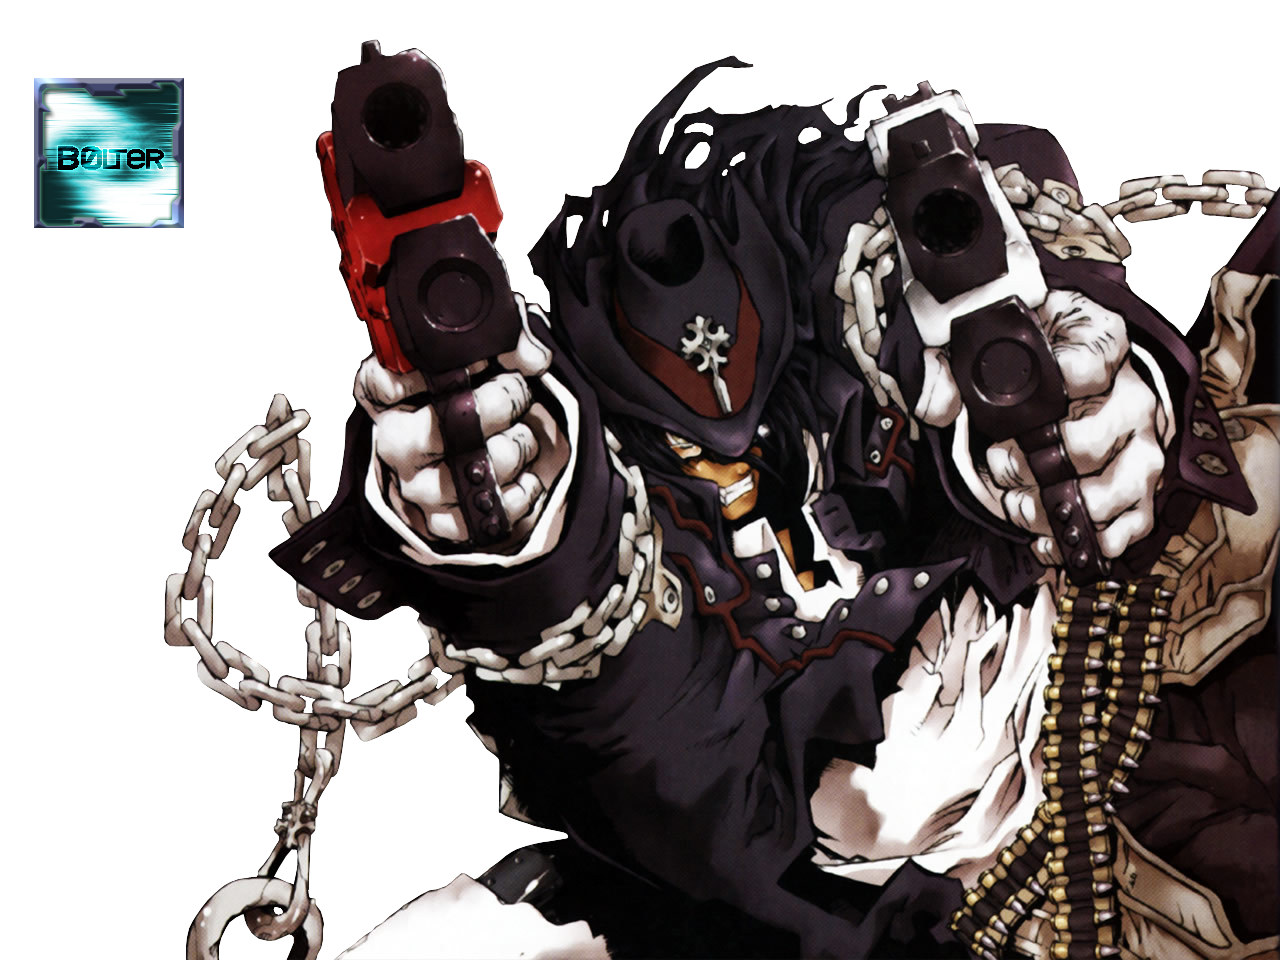 Gungrave HD wallpapers, Desktop wallpaper - most viewed